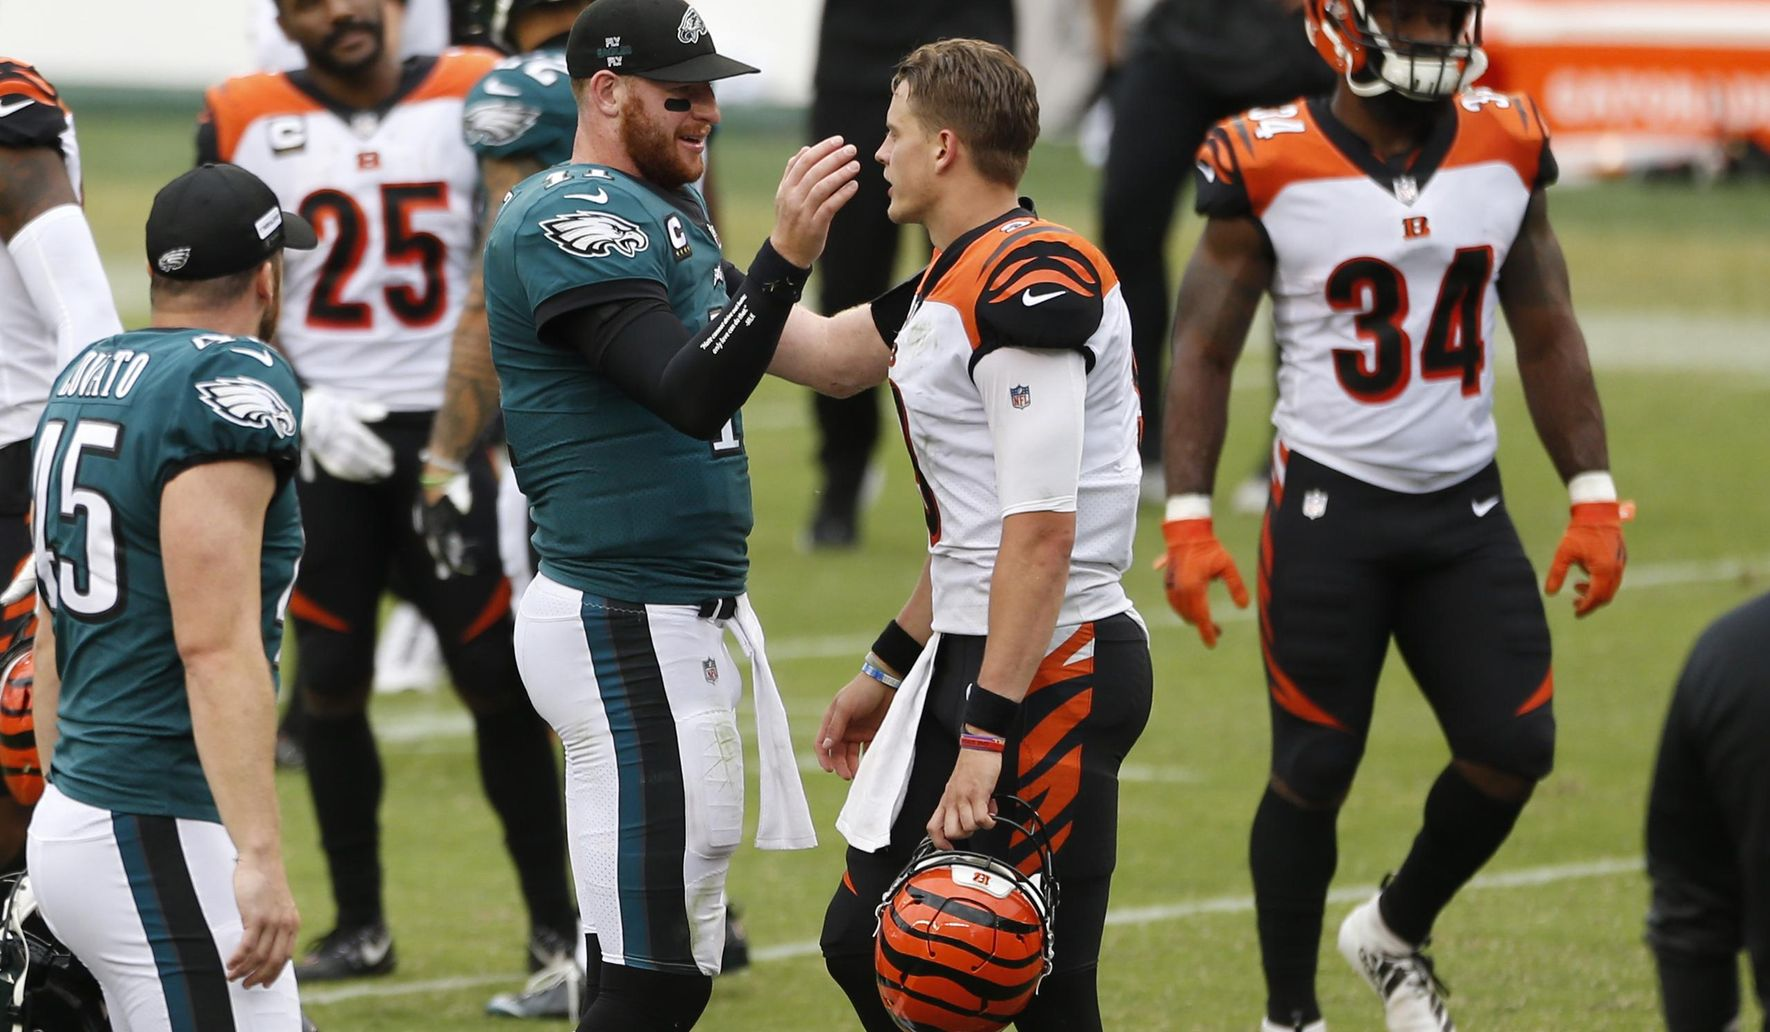 Bengals_eagles_football_73944_c0-107-2562-1600_s1770x1032